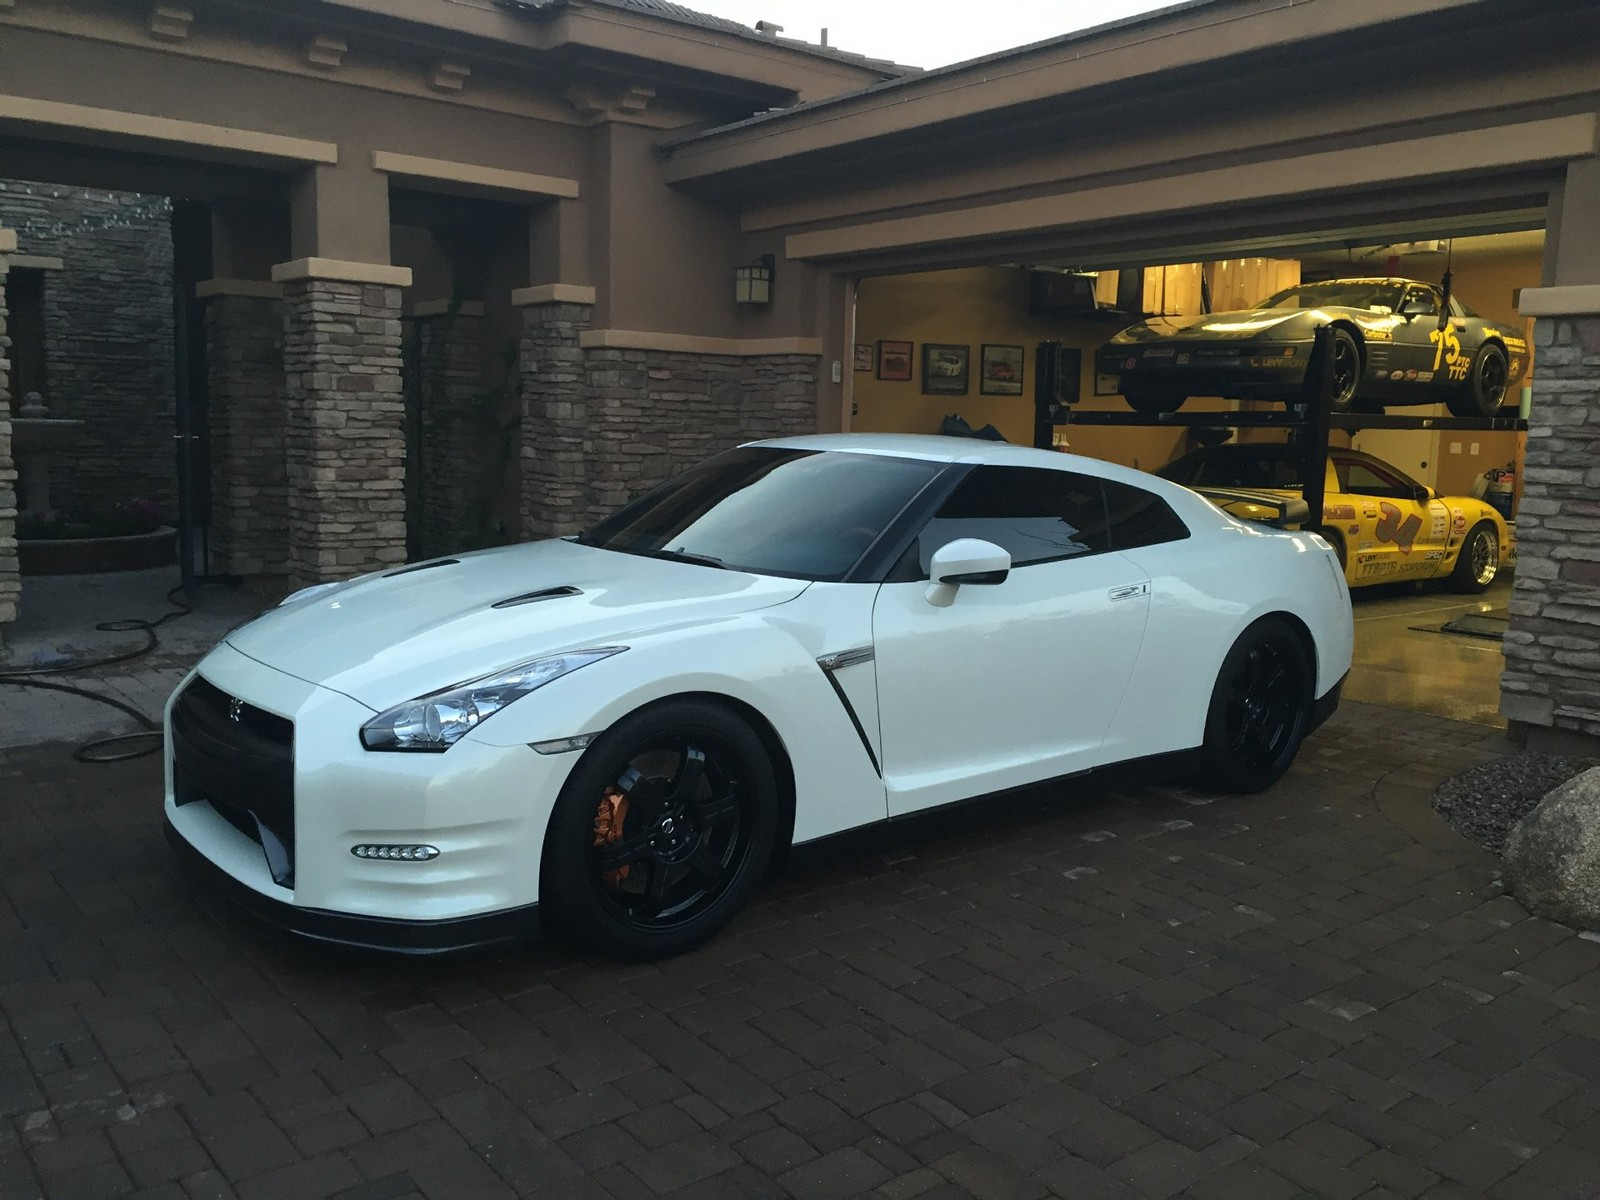 2014 Nissan GT R Black Edition 1 4 mile trap speeds 0 60 DragTimes